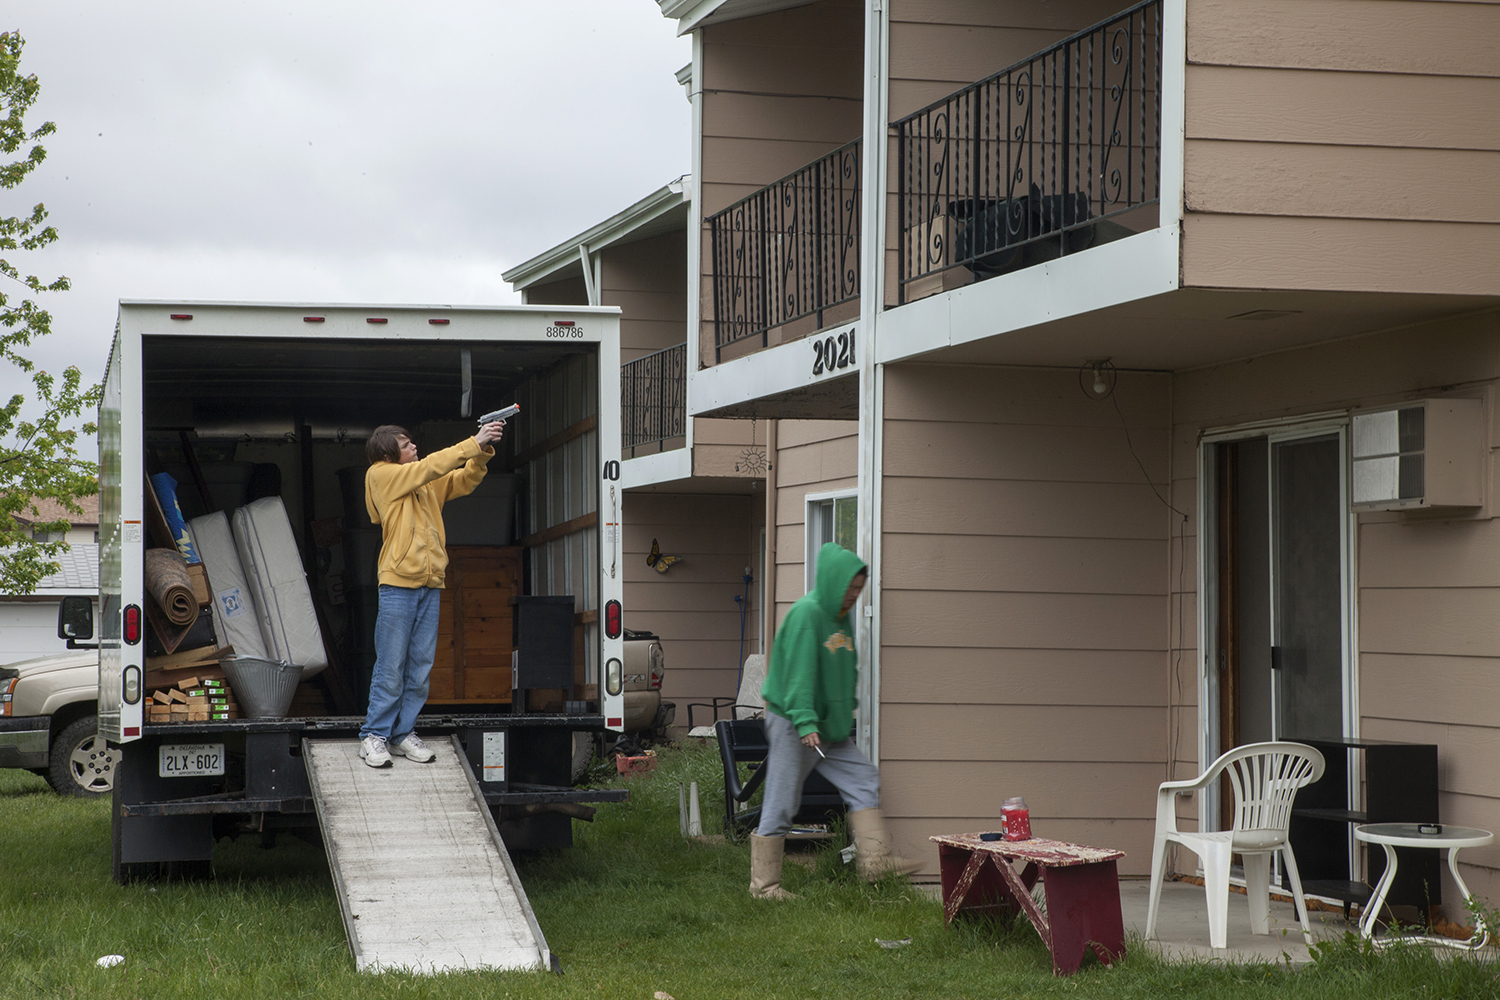 Eviction from apartment complex thatwill soon house oil workers  Williston, ND. 2012